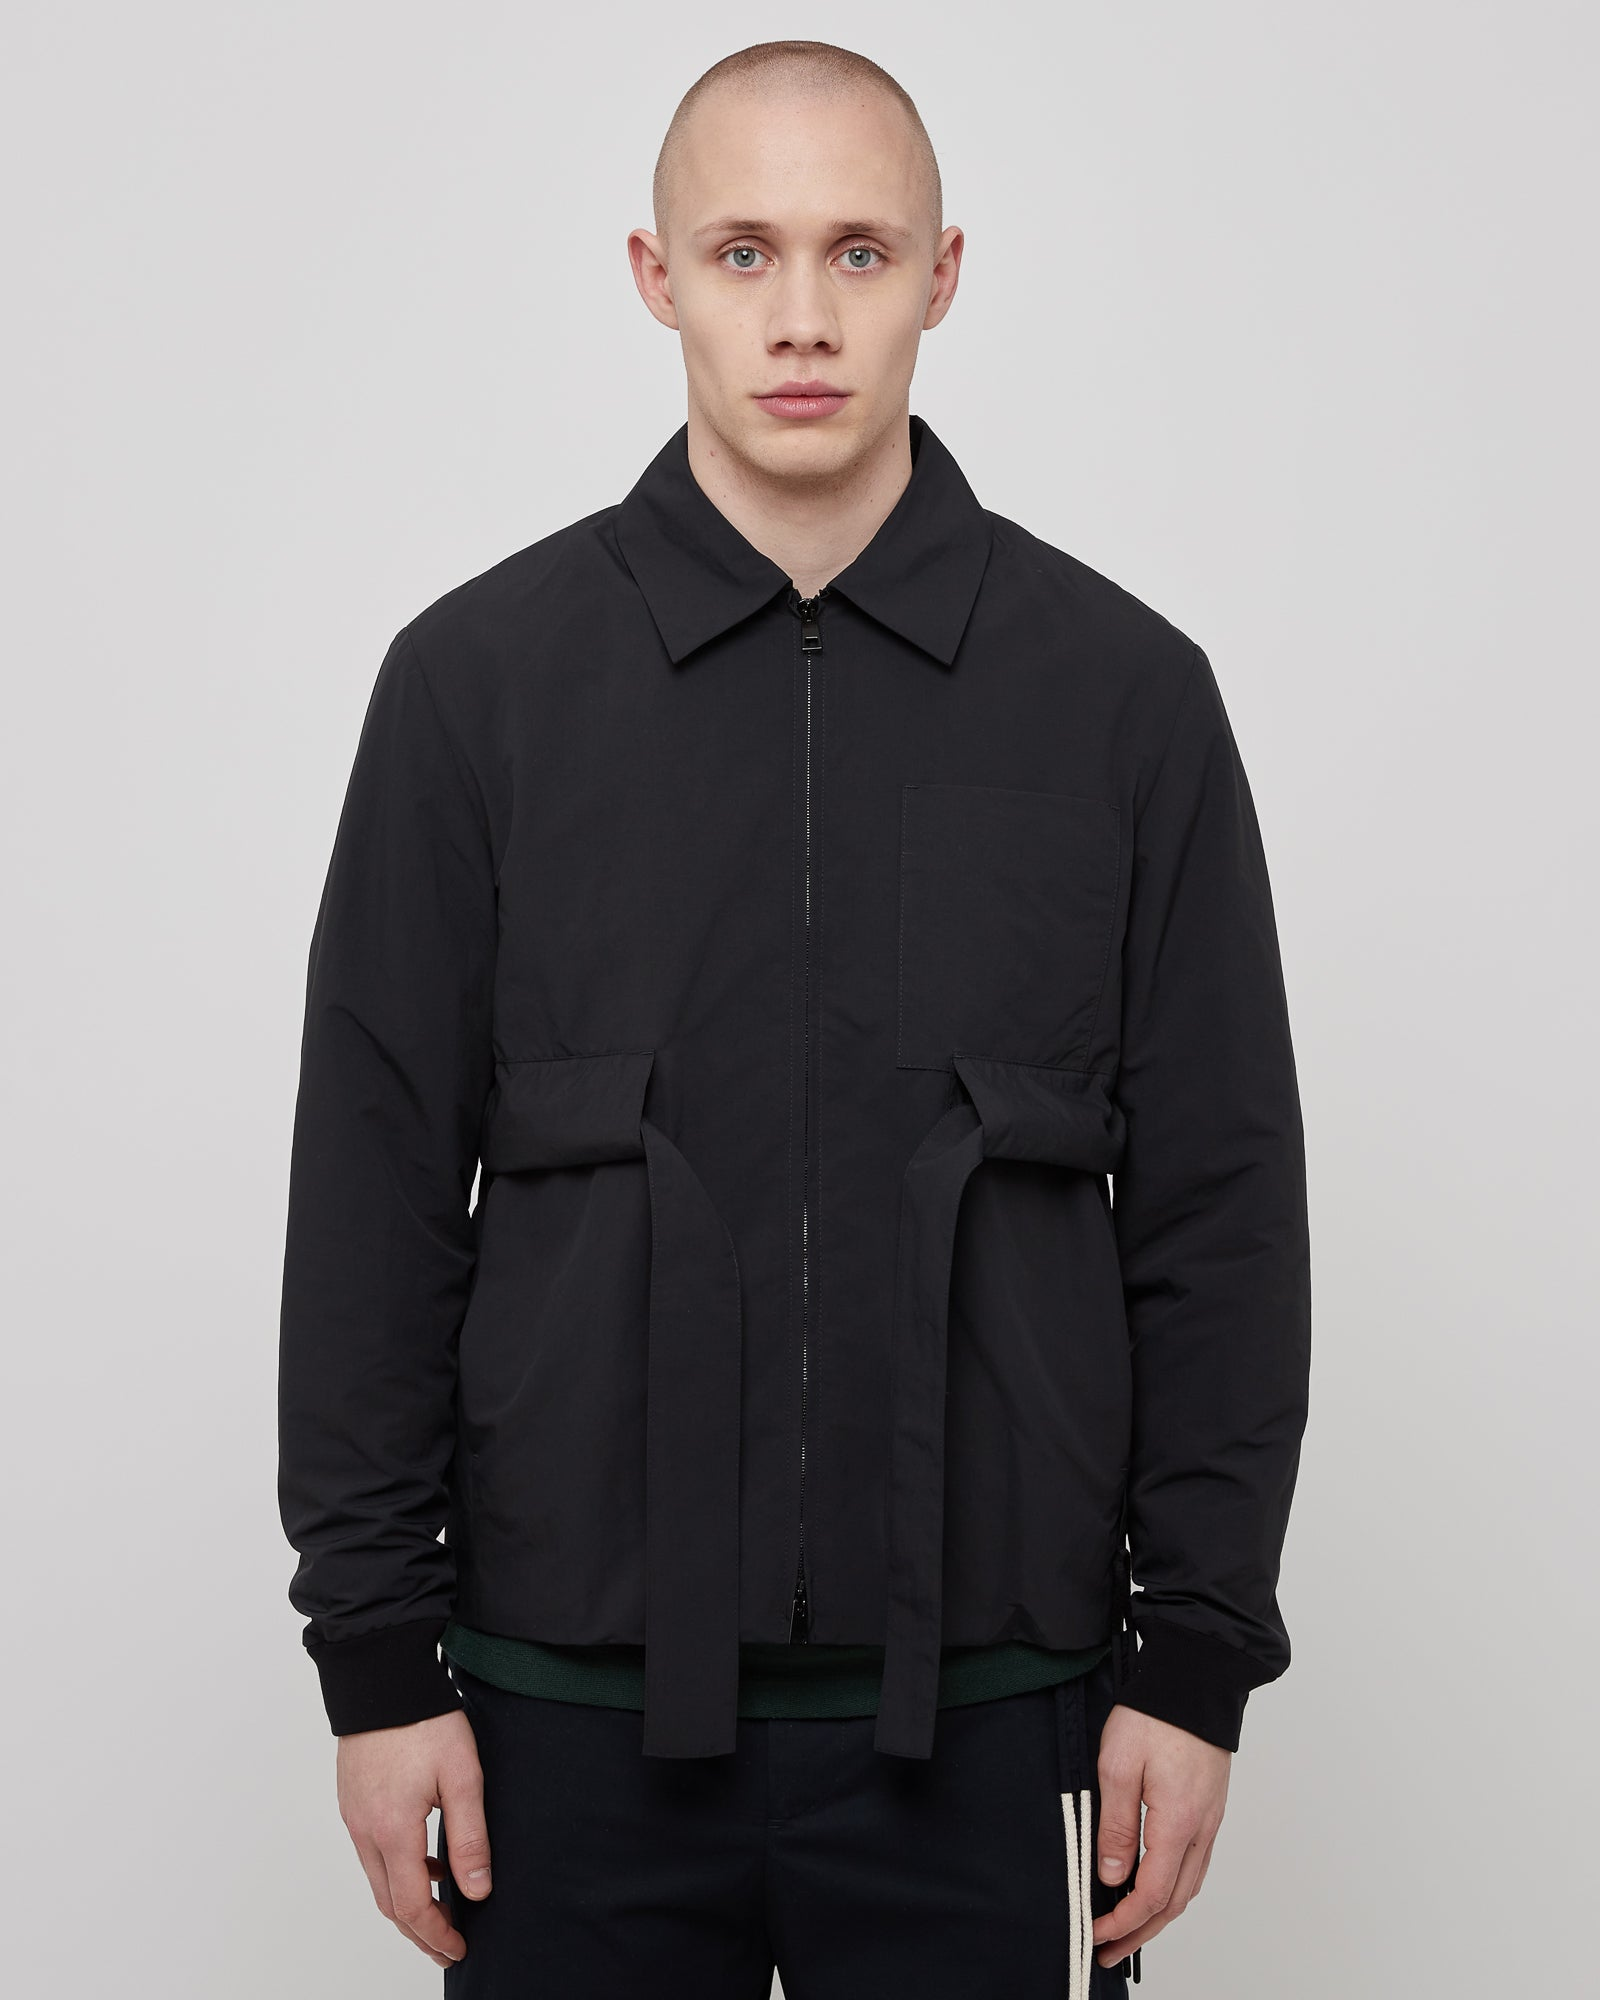 Utility Bomber in Black